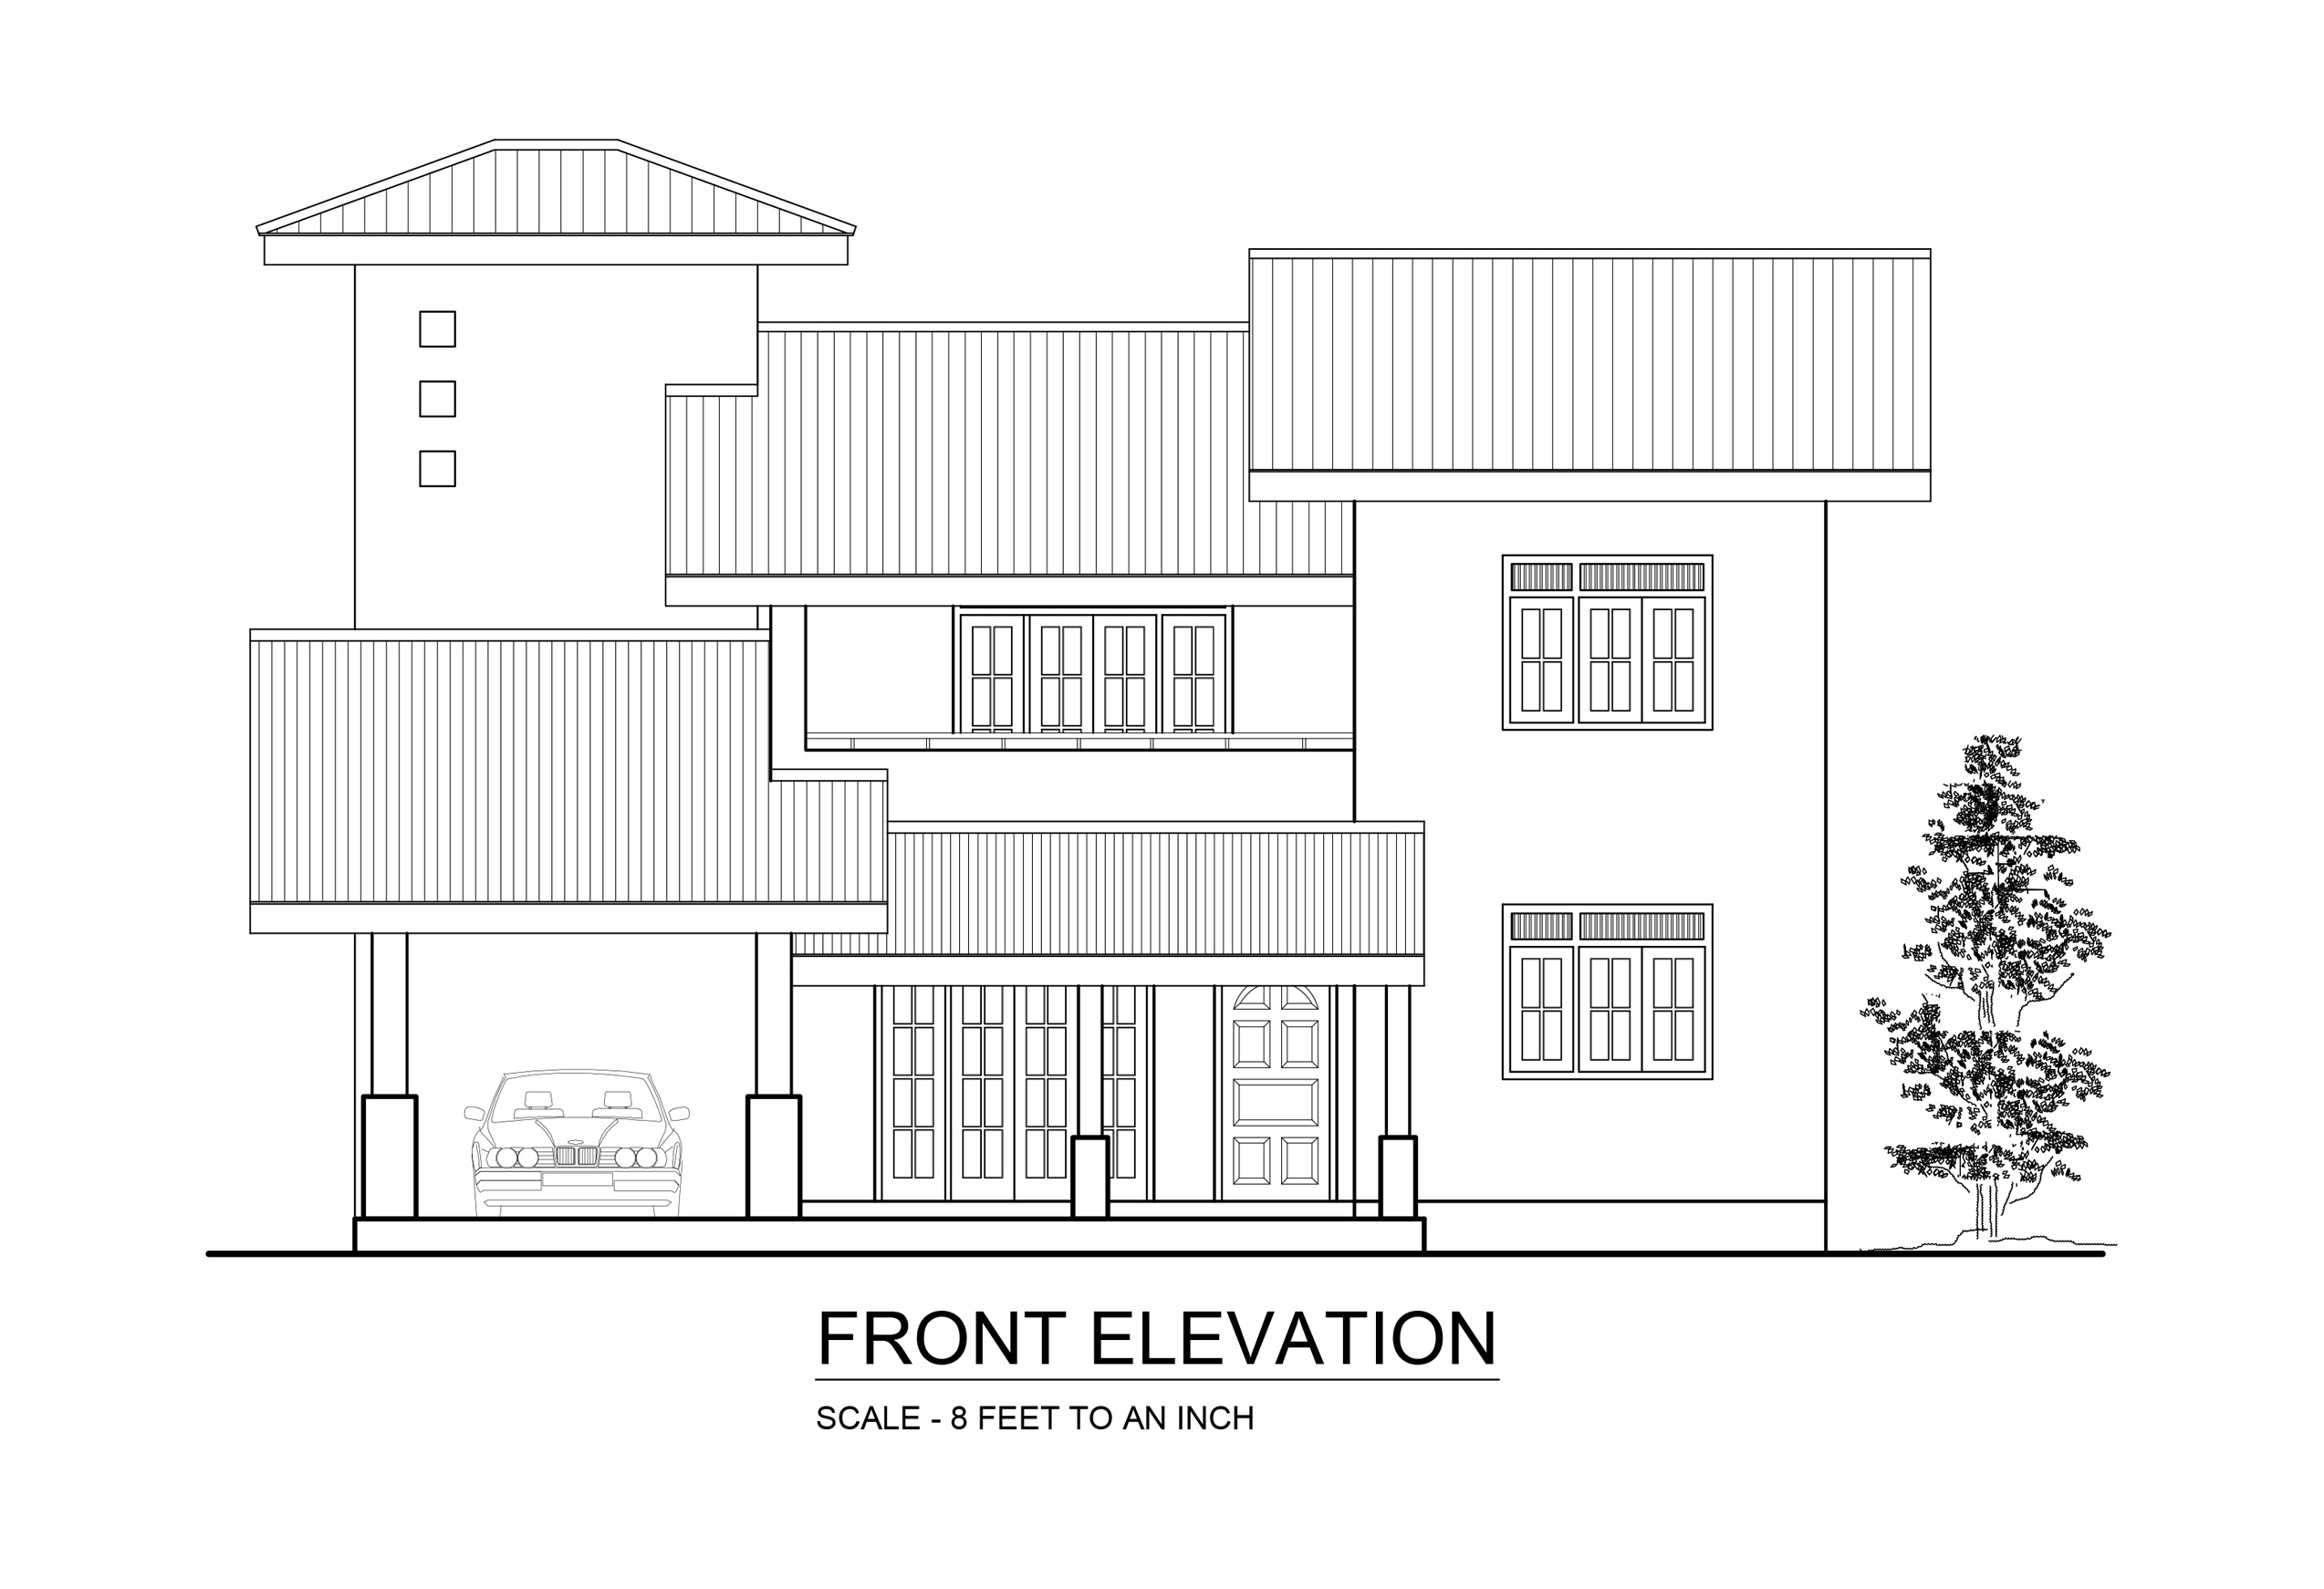 Front Elevation Design Drawing : Premium quality four bedroom double story house plan